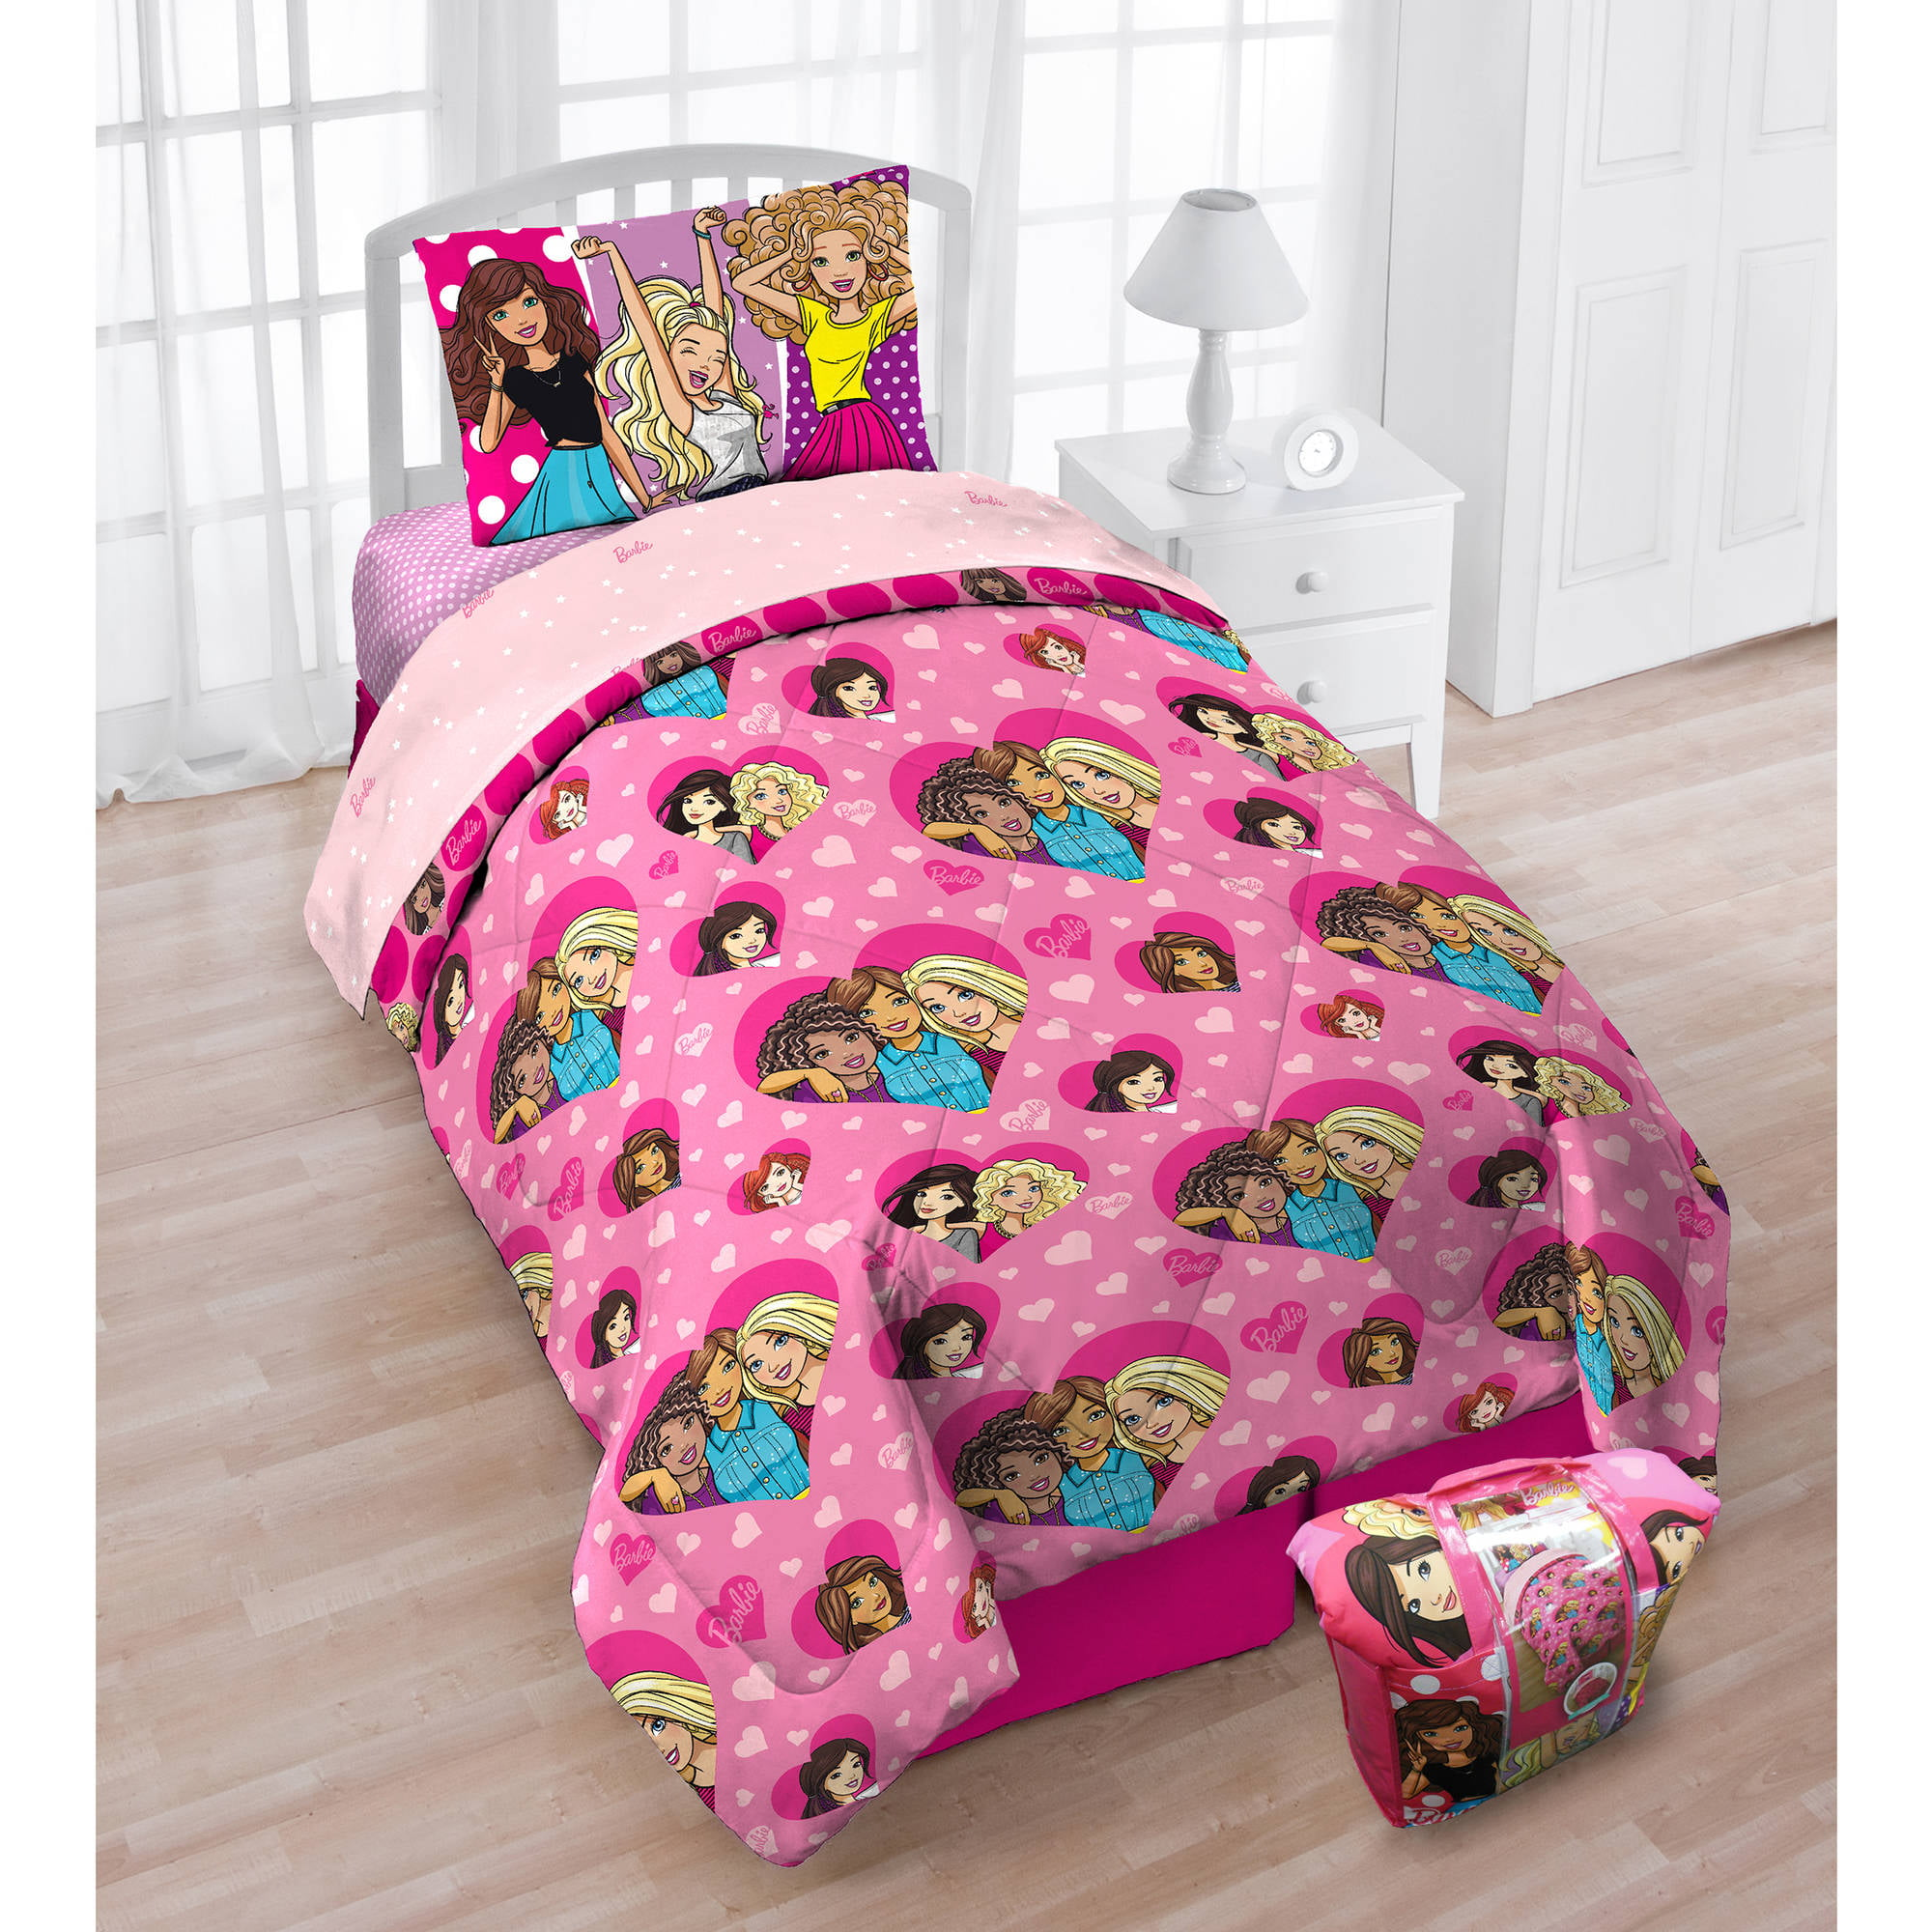 Mattel Barbie 'B Anything' 4-Piece Twin Bedding Set with Bonus Tote, Exclusive by Franco